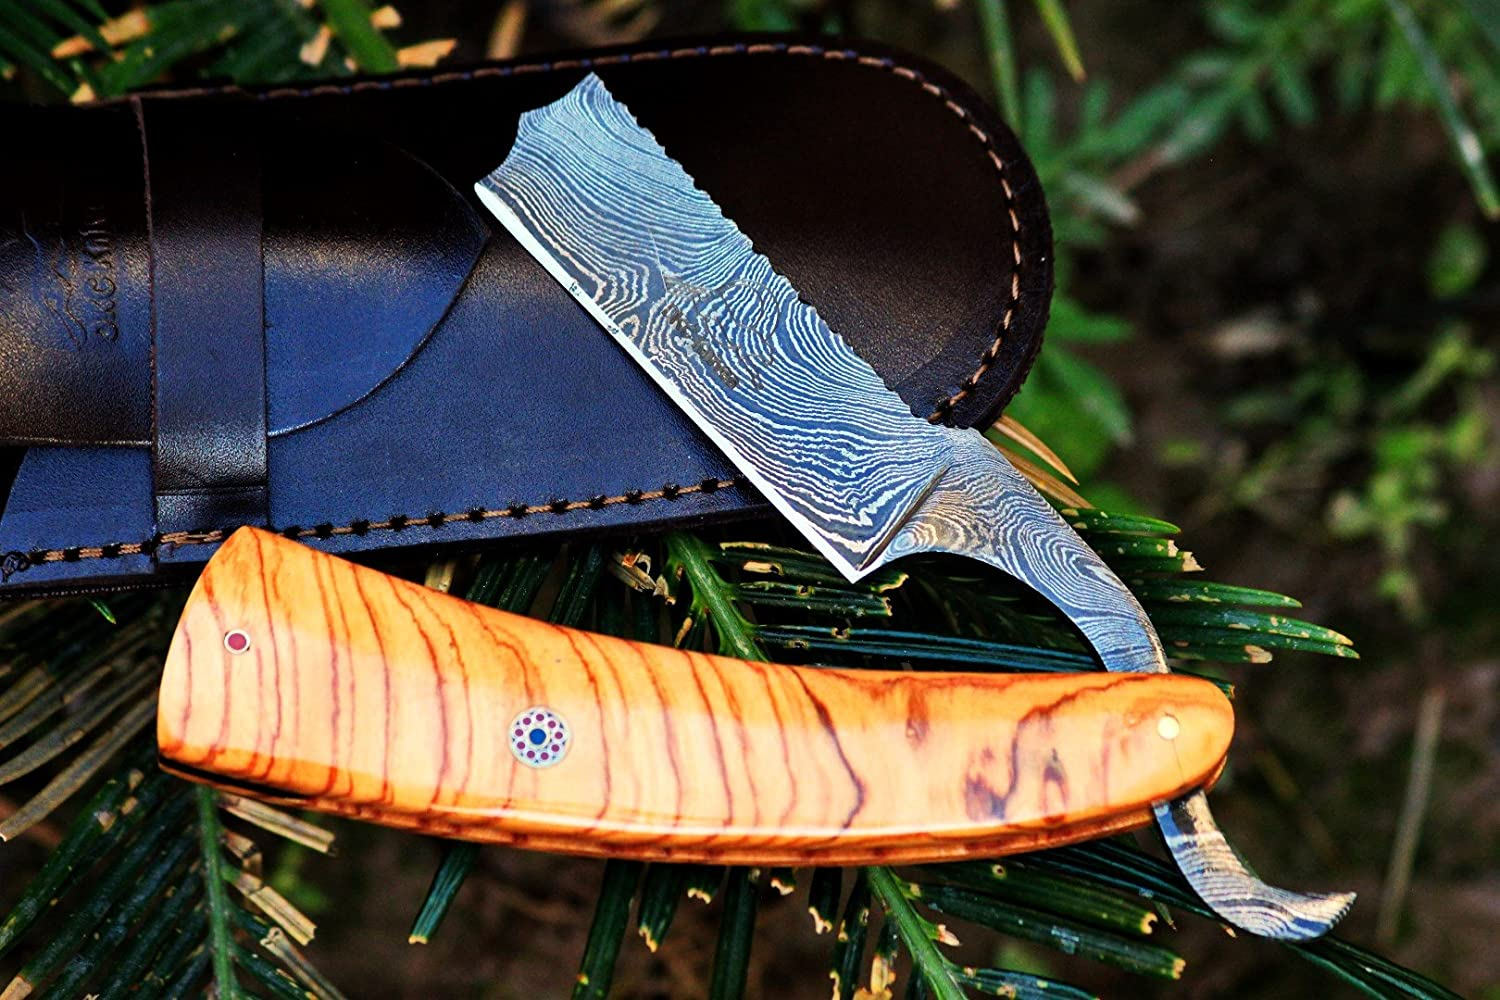 (7 9/18) DKC-537 Sale KNIGHT'S Barber Razor Damascus Steel 6 Long 3 Blade 2.5 oz Burl Olive Wood DKC Knives